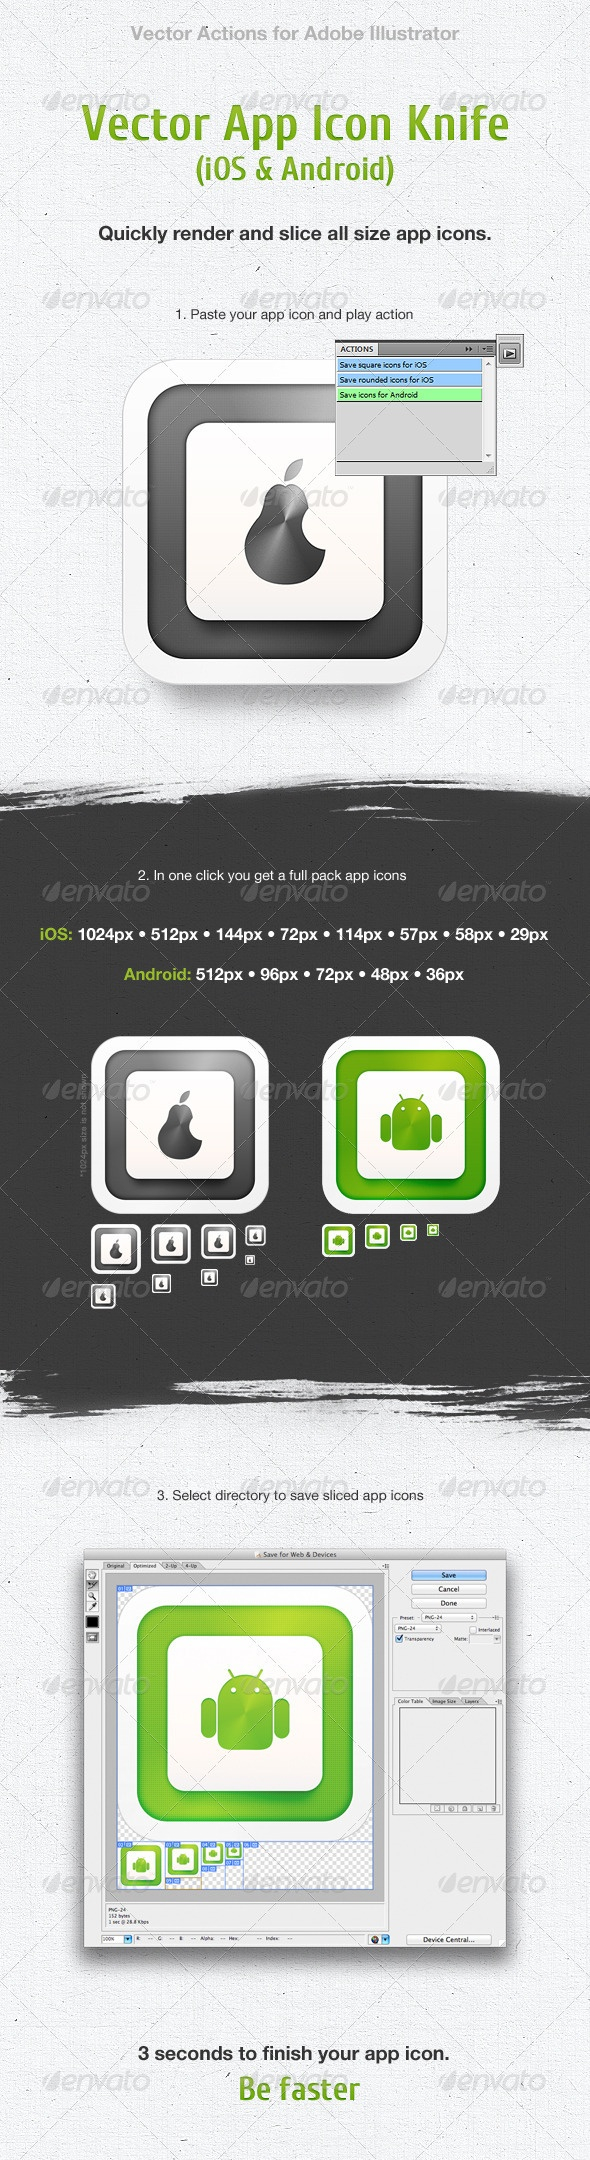 http://graphicriver.net/item/vector-app-icon-knife/2197974?WT.ac=search_thumb_1=search_thumb_author=igortomko#